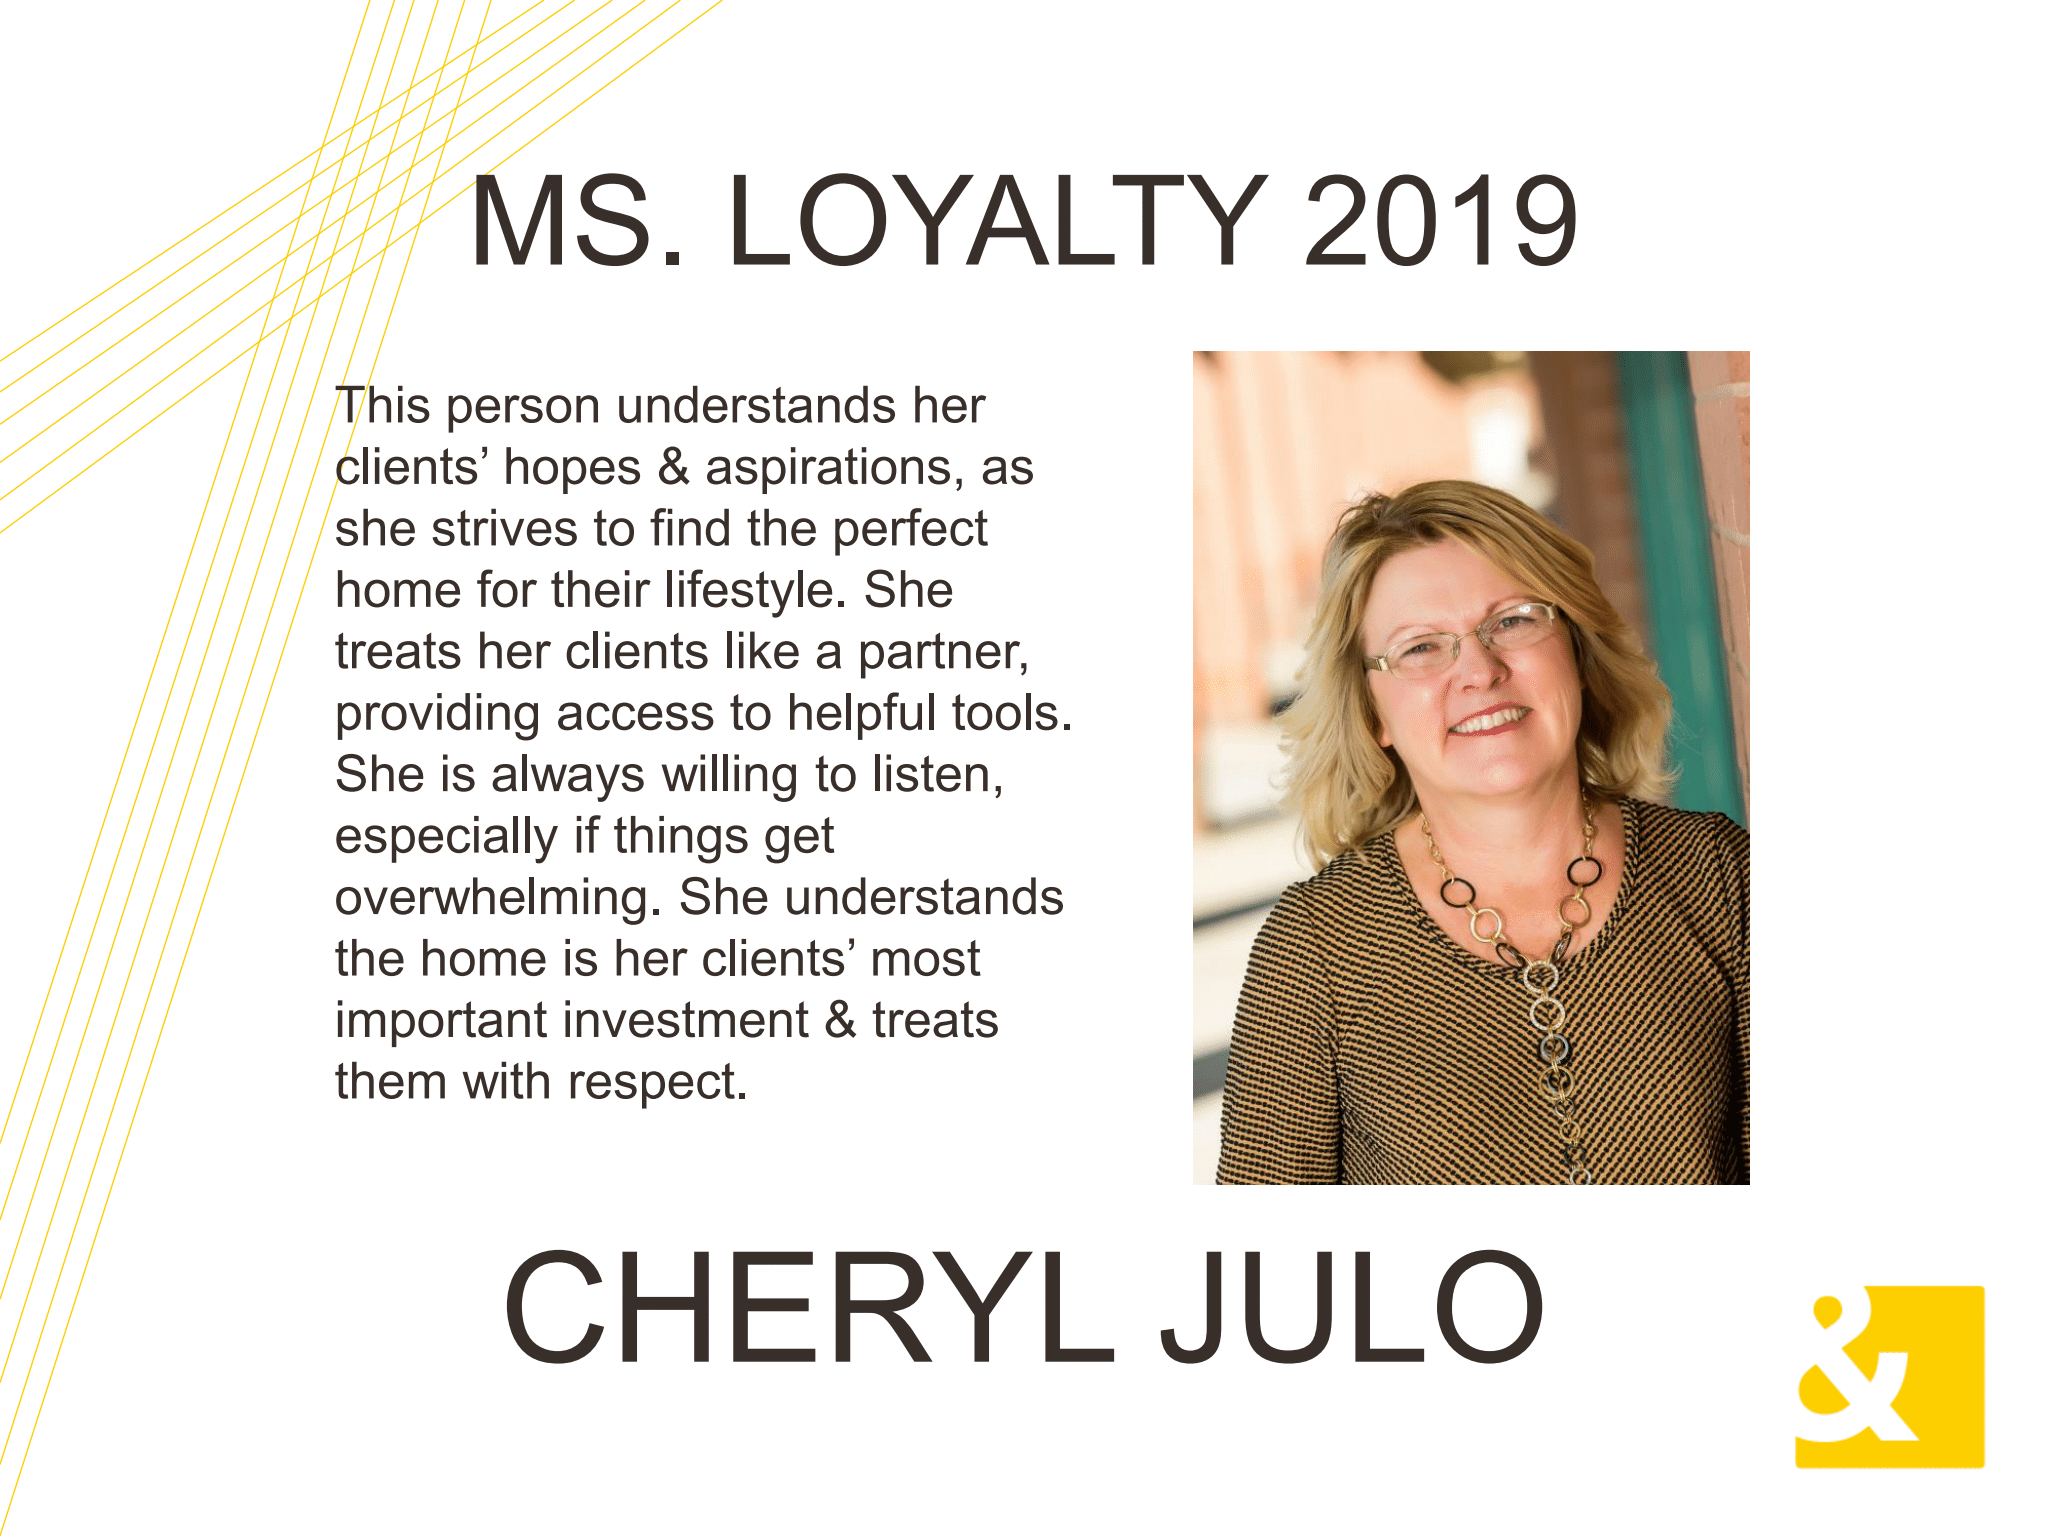 Ms. Loyalty 2019, Cheryl Julo. This person understands her clients' hopes & Aspirations, as she strives to find the perfect home for their lifestyle. She treats her clients like a partner, providing access to helpful tools. She is always willing to listen, especially if things get overwhelming. She understands the home is her clients' most important investment & treats them with respect.